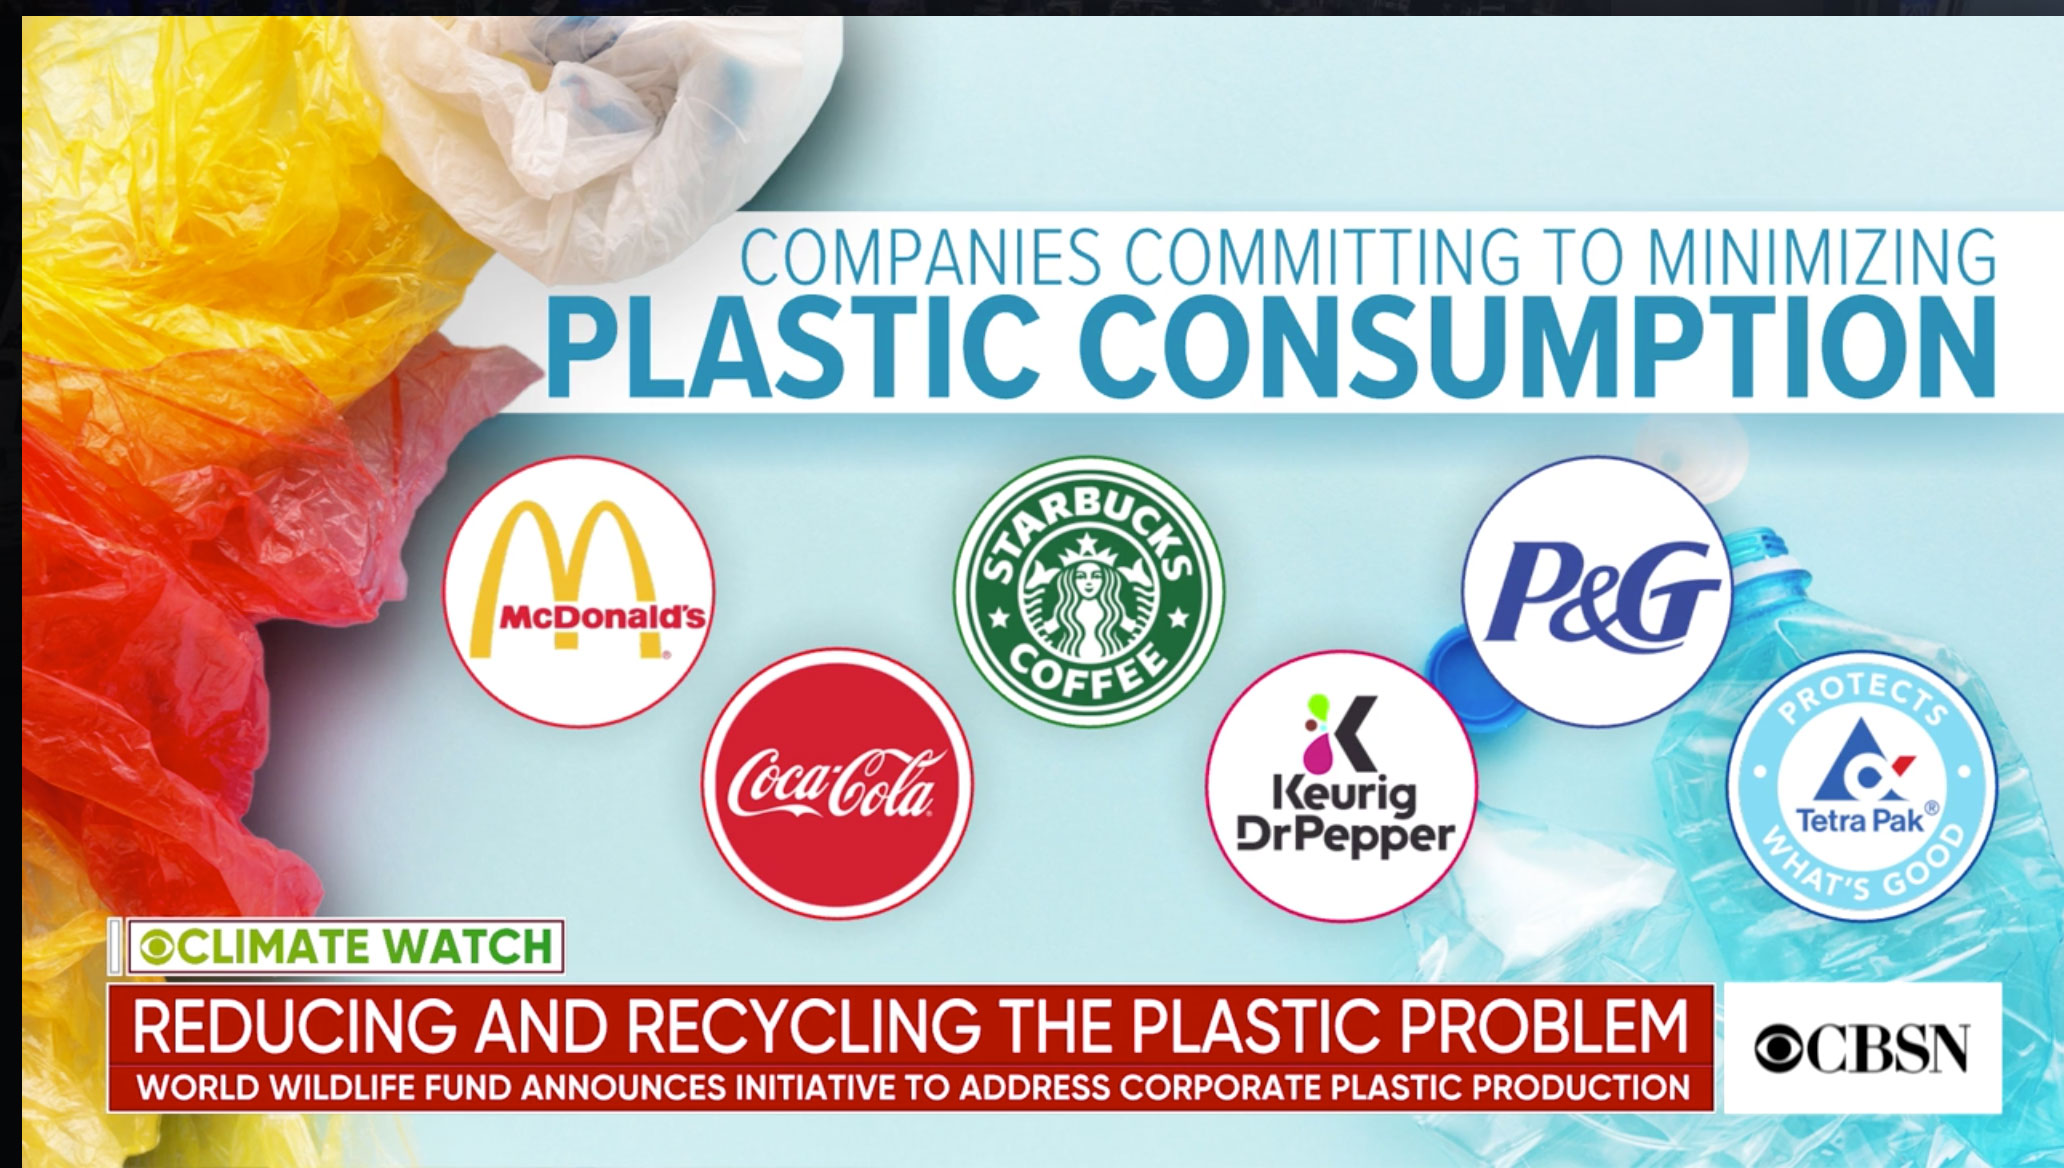 Big Companies join initiative to curb plastic production